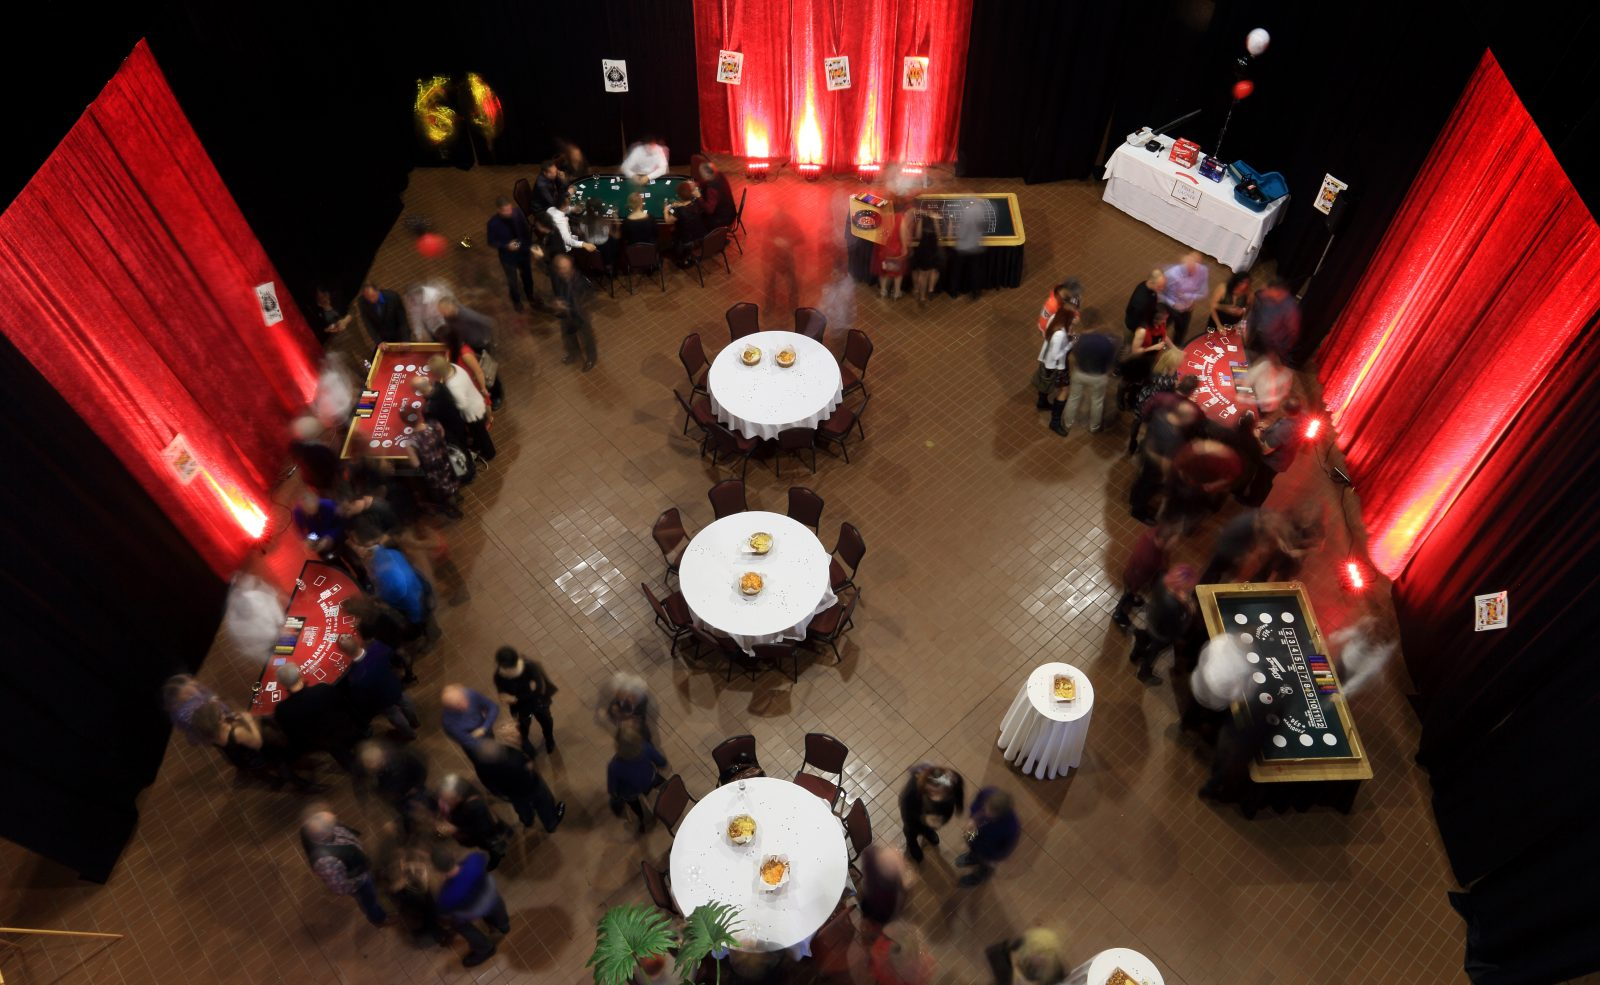 https://www.hoteluniversel.com/wp-content/uploads/2018/05/Party-LFL-Hall-1-1600x985.jpg